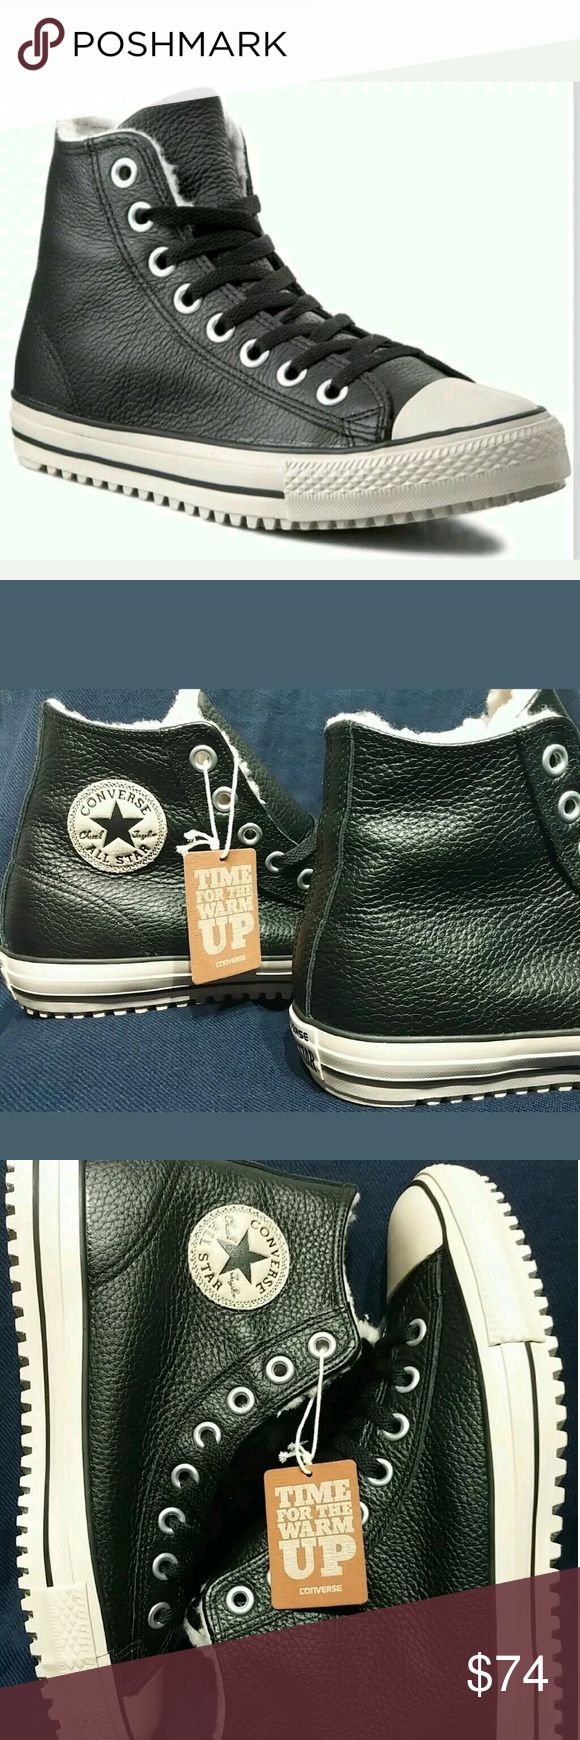 Converse Chuck Taylor Leather Winter Boot Sherpa Very Nice Leather Boot!  Converse Chuck Taylor All Star CT Boot Black w/?Sherpa Lining  MSRP $110  Please ask me any questions you may have!! Converse Shoes Rain & Snow Boots